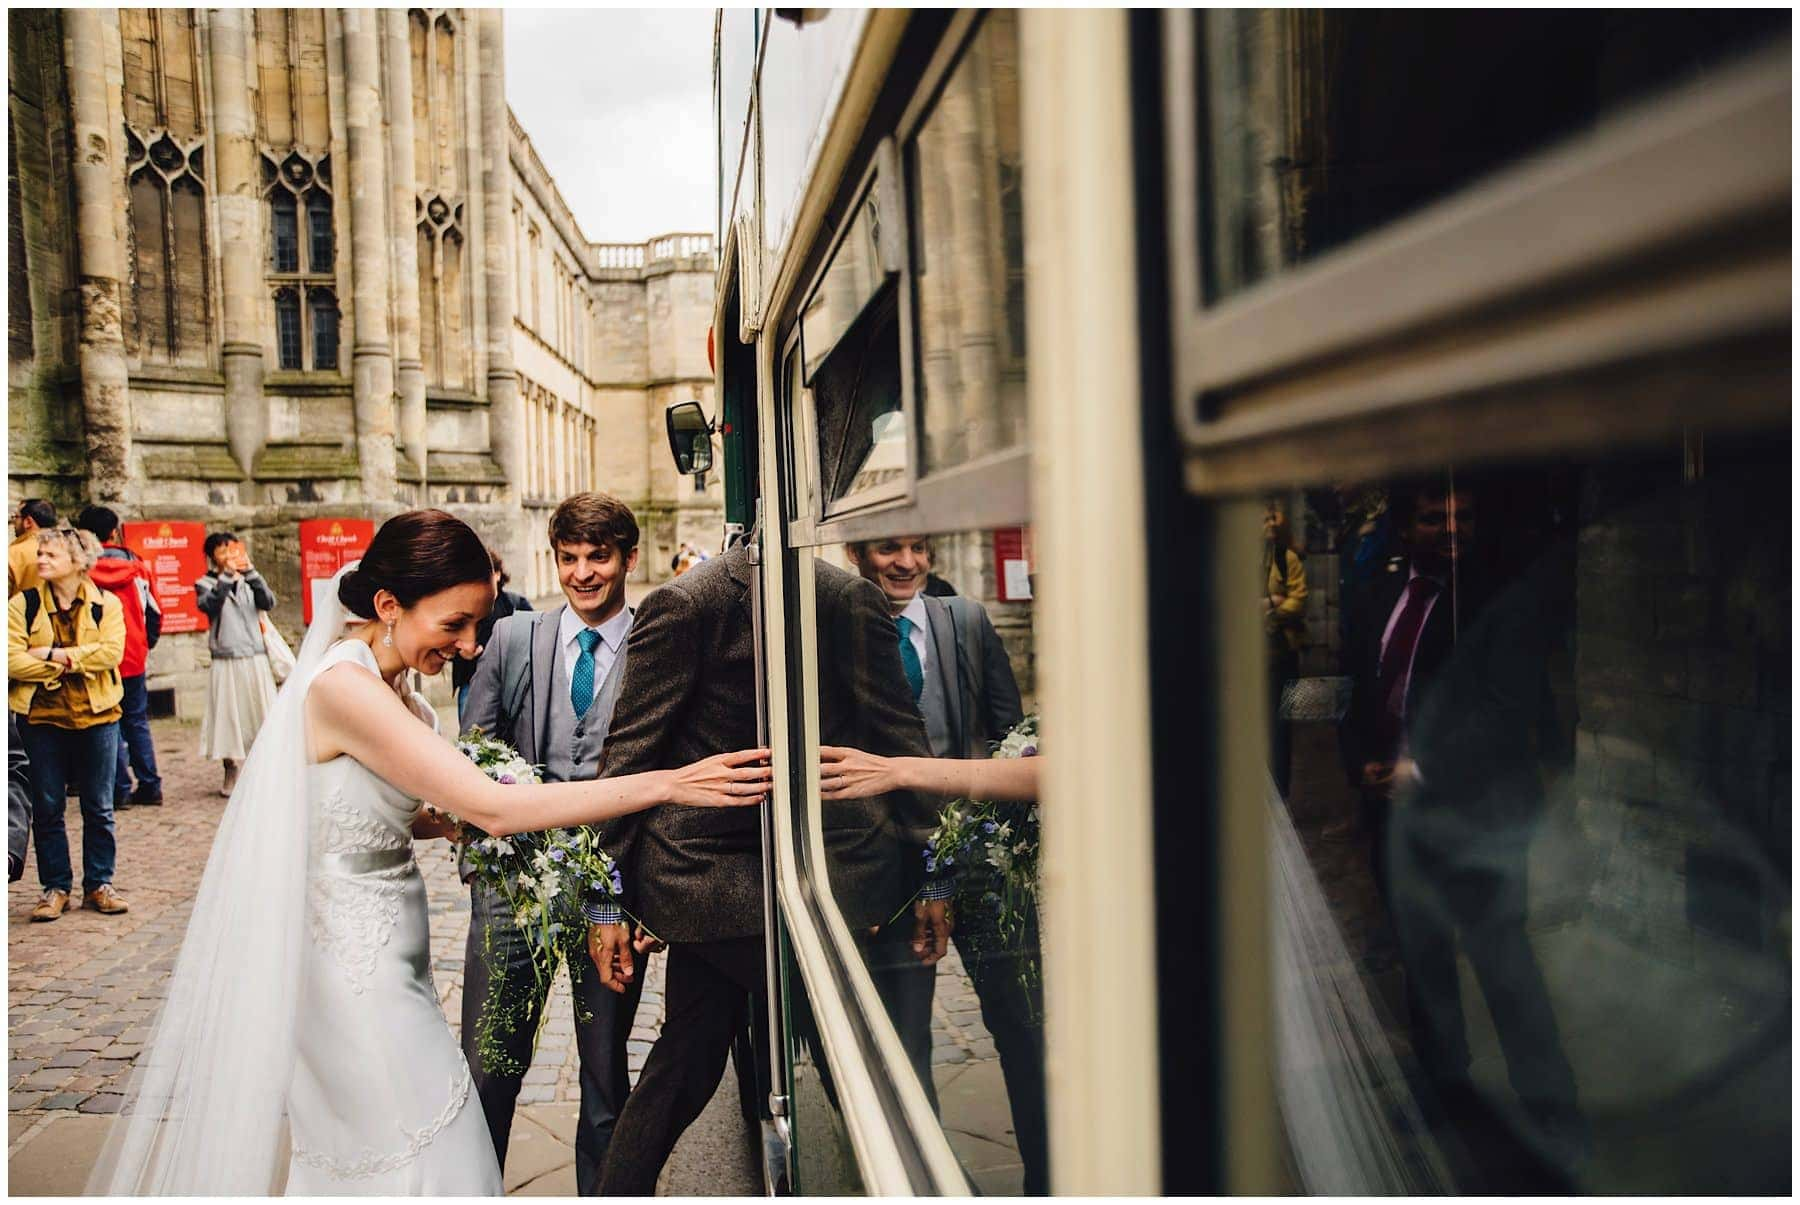 Oxfordshire wedding Photographer J S Coates Wedding Photography. Oxford Town Hall & The Perch Pub 43